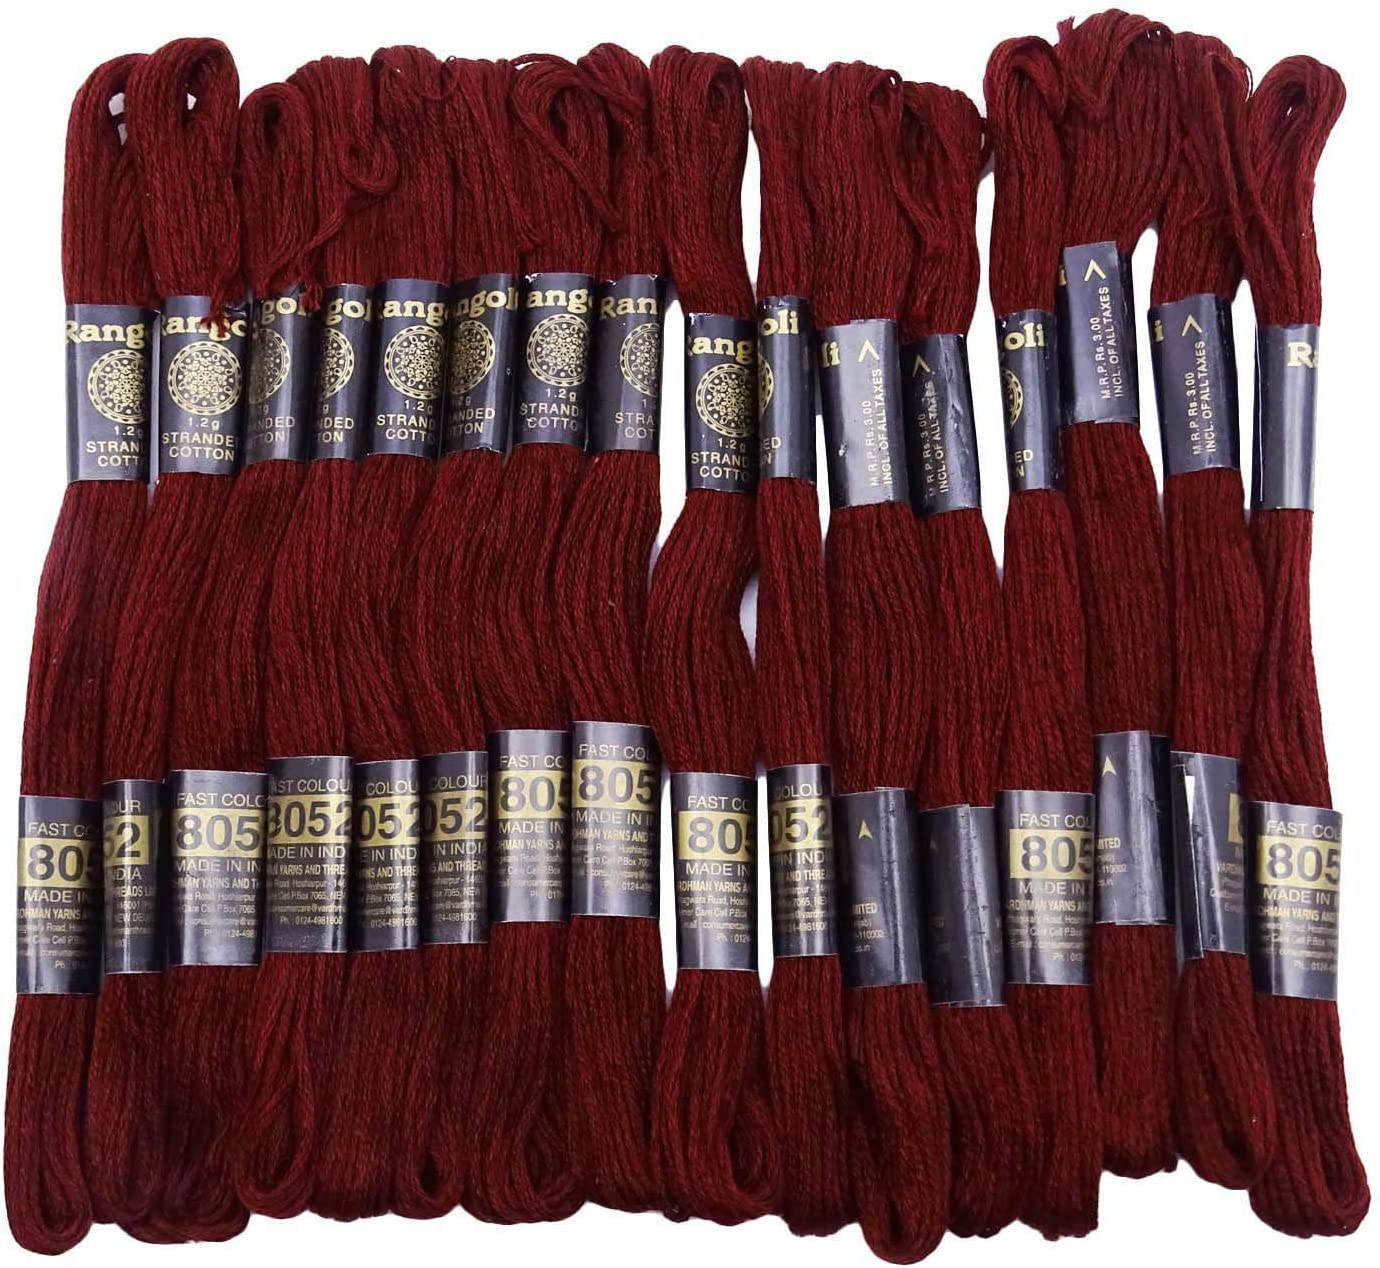 IBA Indianbeautifulart 25 Pcs Paquet Coton /à Coudre Broder Knitting Floss Skeins Point